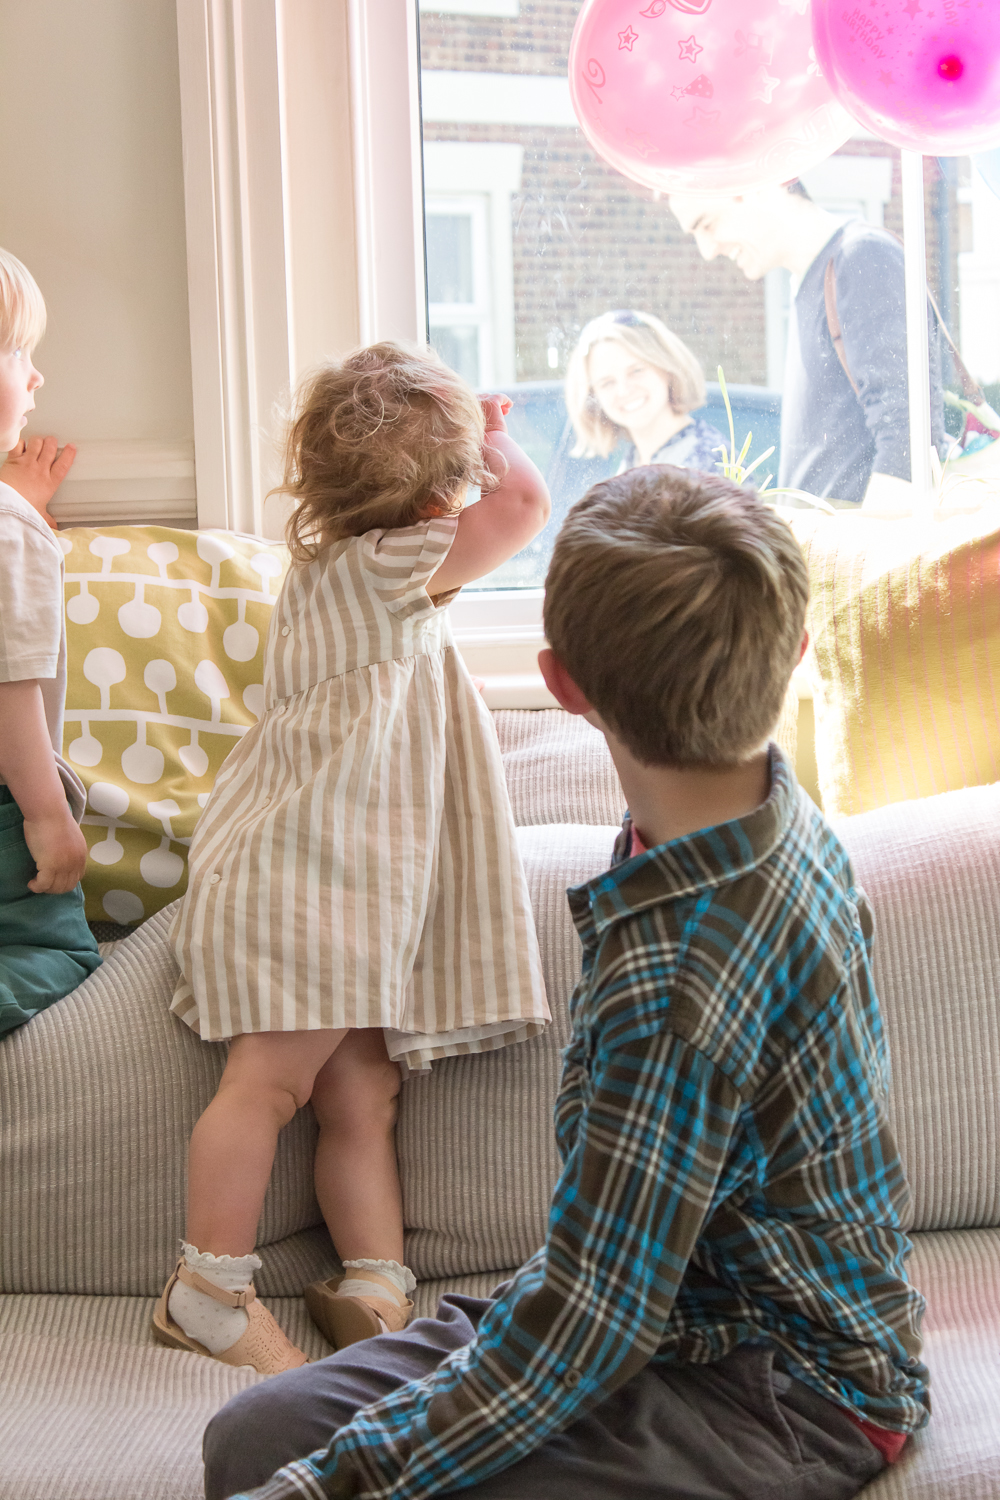 An indoor photograph of a child's birthday party - two children look out the window as guests arrive to the party